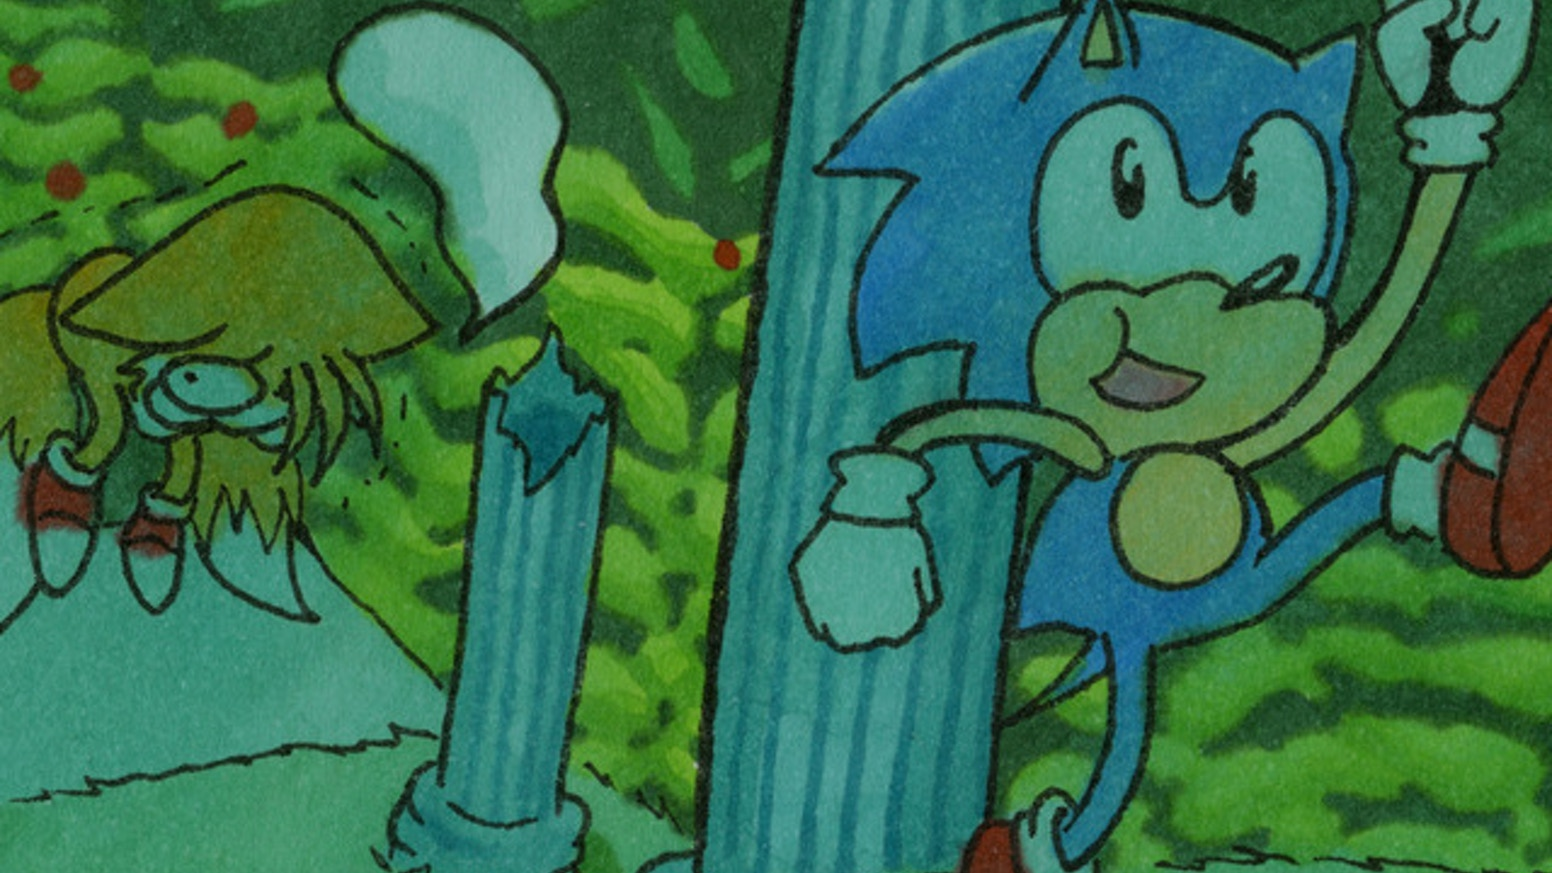 Not Enough Rings A Sonic The Hedgehog Parody Comic By Veronica Vera Up Over And Gone Kickstarter